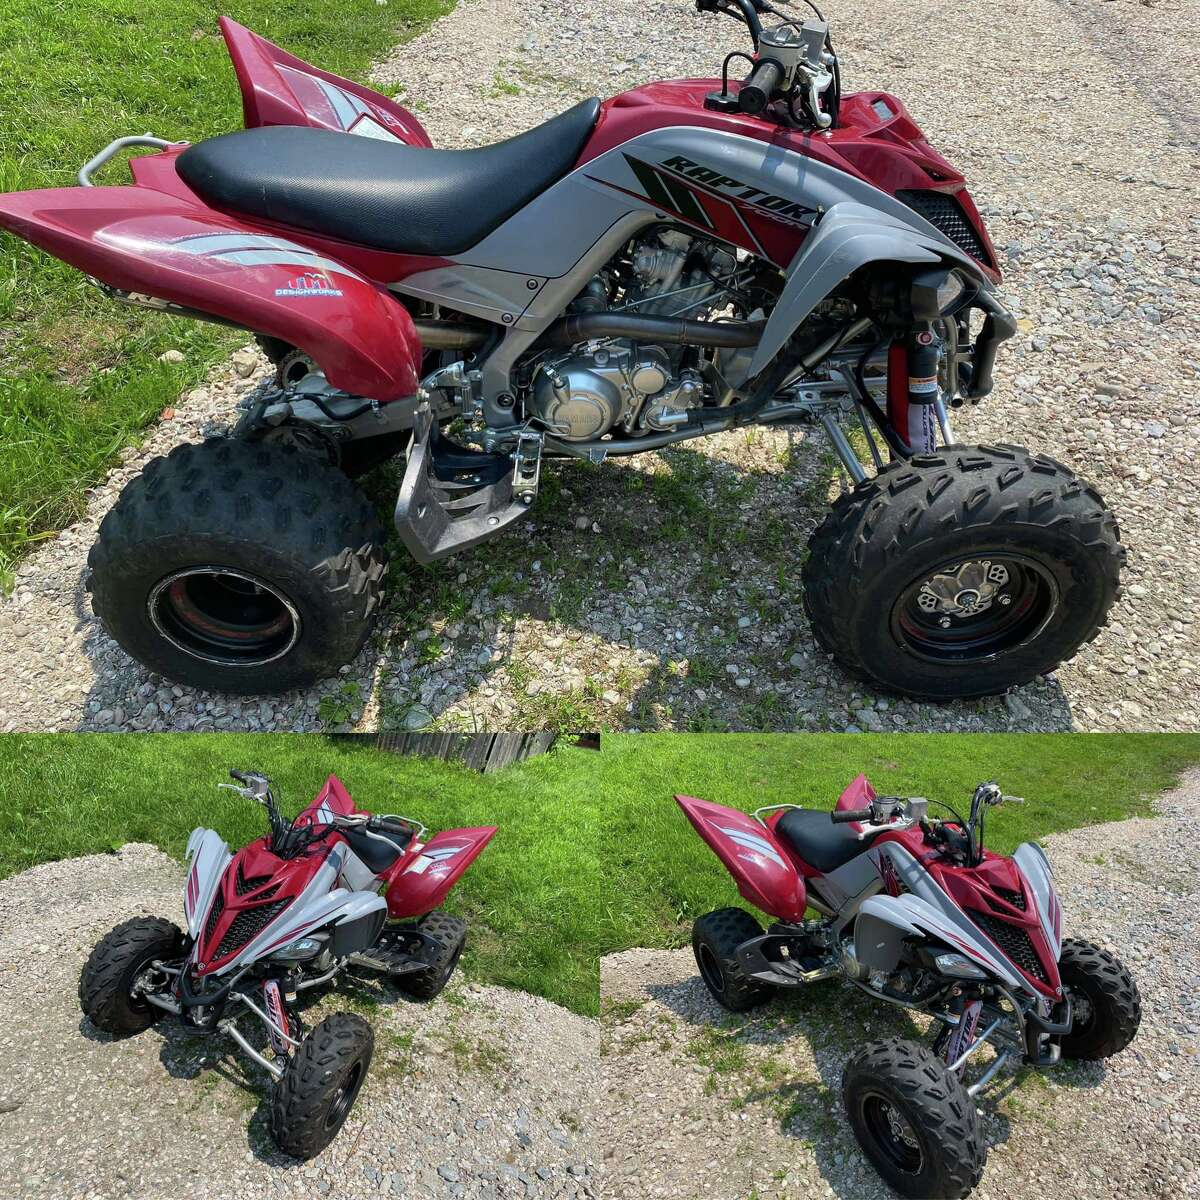 An individual tried to sell this ATV through Facebook Marketplace. Police said when the seller met up with the potential buyer at a North Stonington, Conn., commuter parking lot, the potential buyer asked to take the ATV for a test drive. He left the lot and never returned.